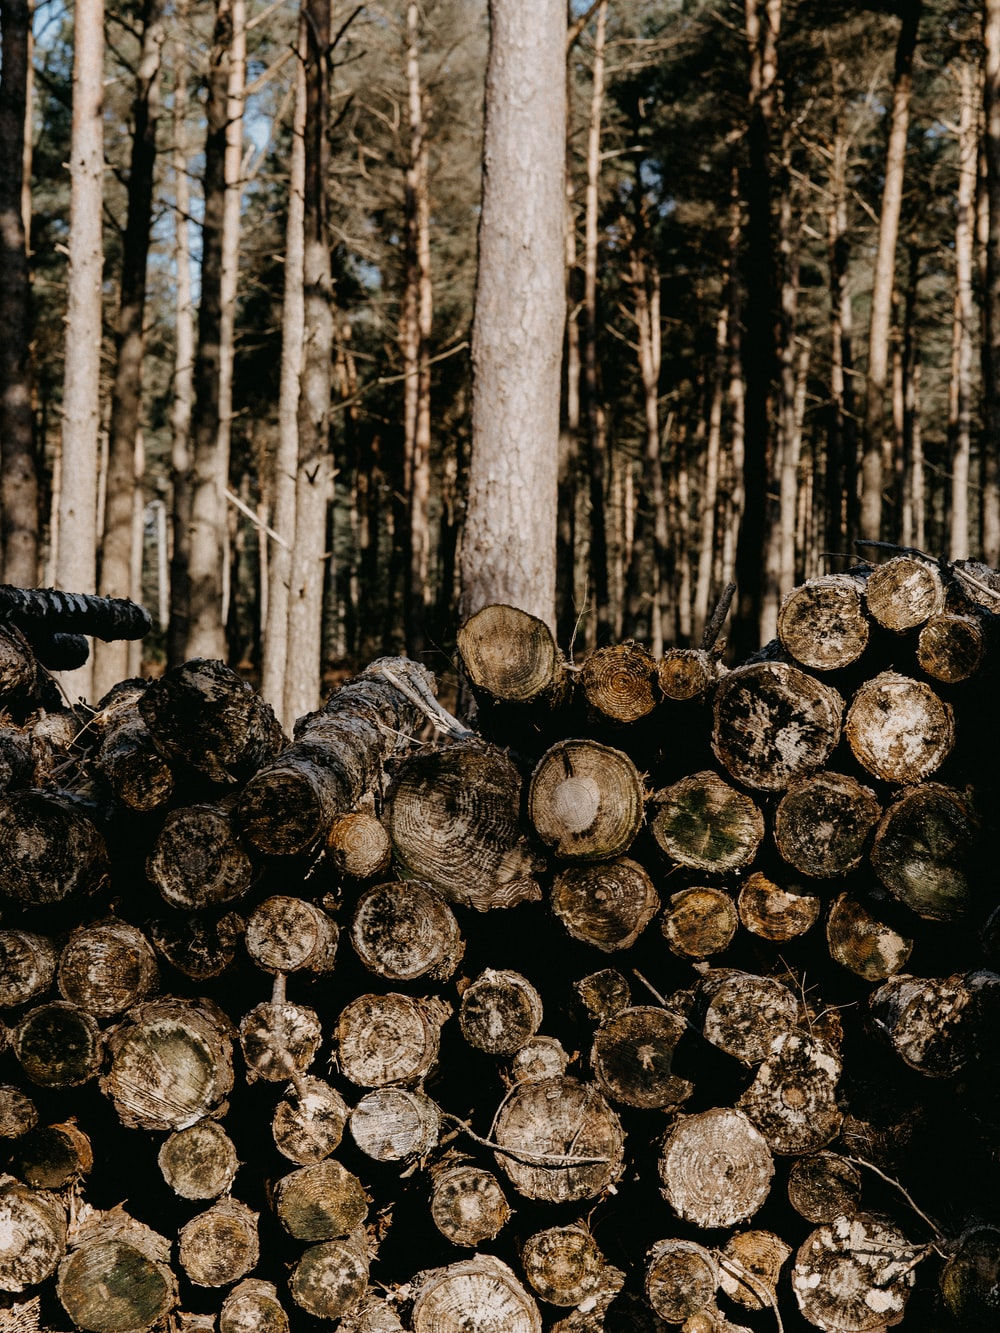 grayscale photography of tree logs